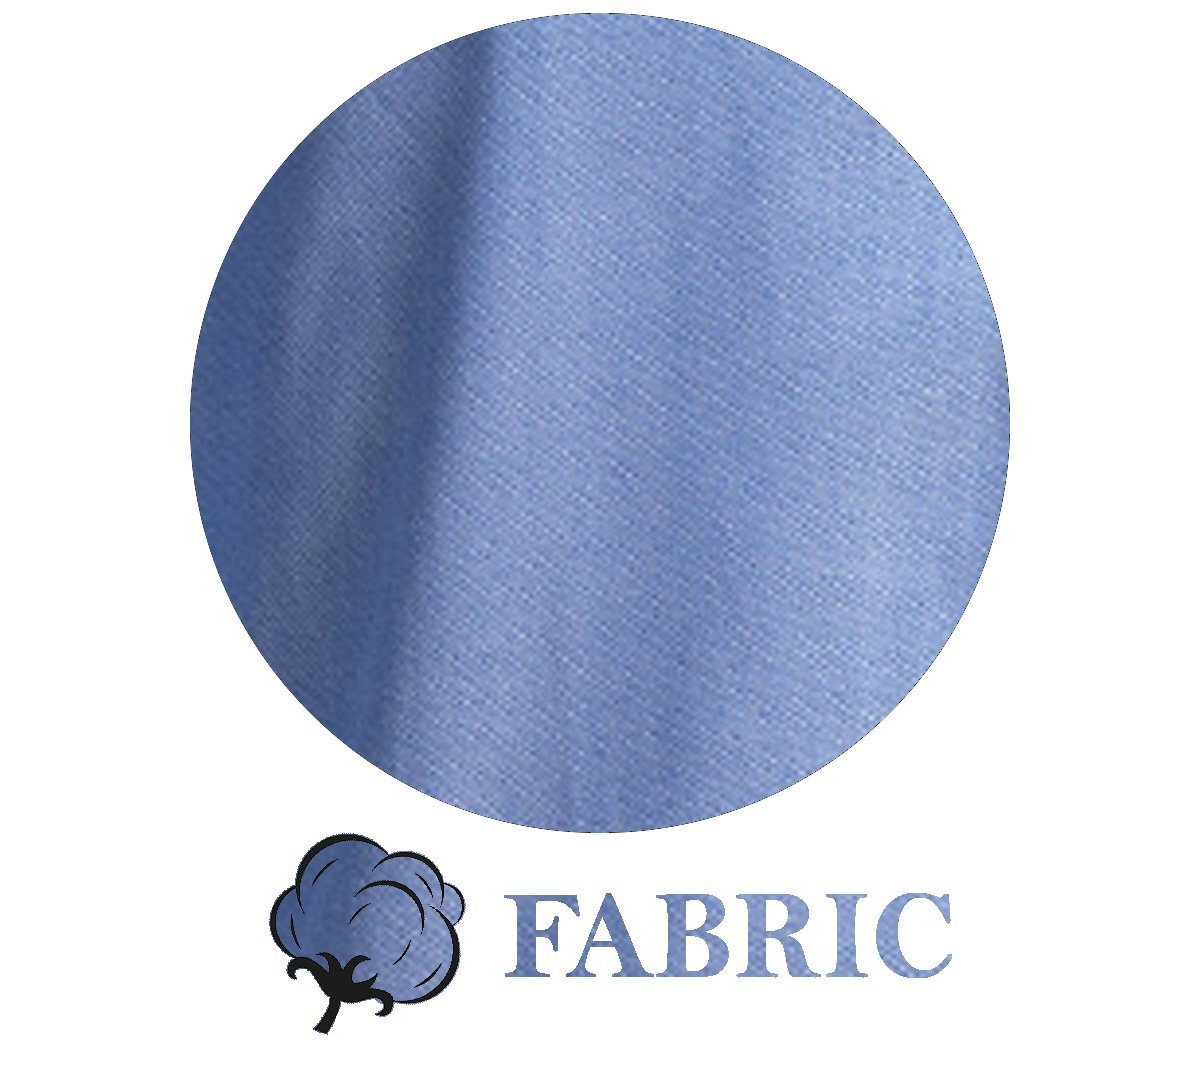 Blue Men's Slim Fit French Cuff Dress Shirts with Cufflink Holes - Casual and Formal - Amedeo Exclusive